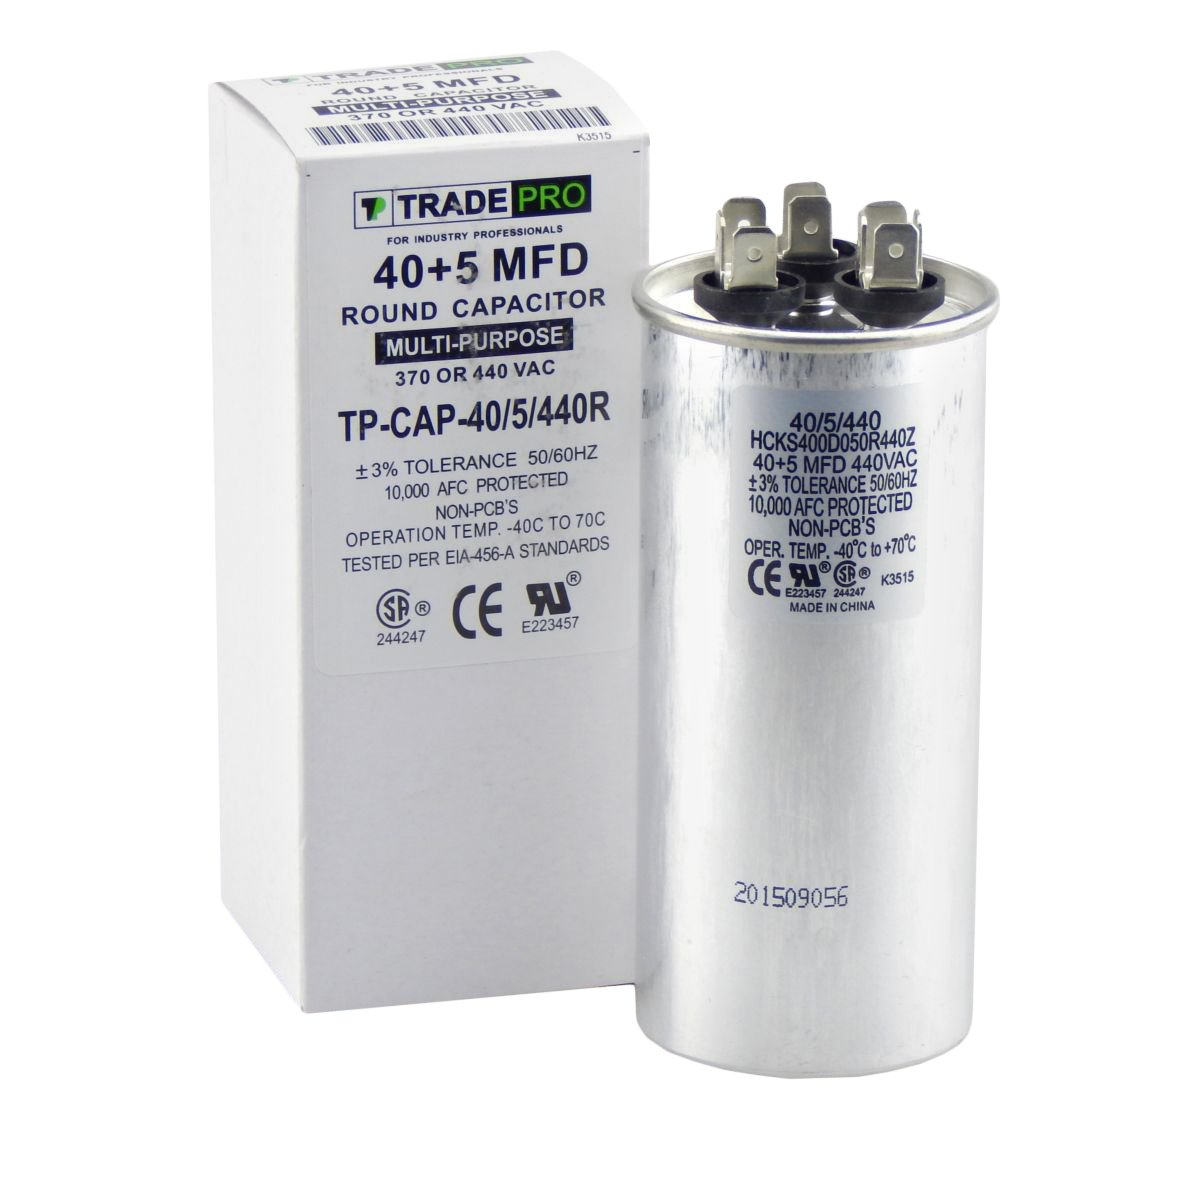 40/5 MFD Multi-Purpose 440 or 370 Volt Round Run Capacitor Replacement TradePro 40+5